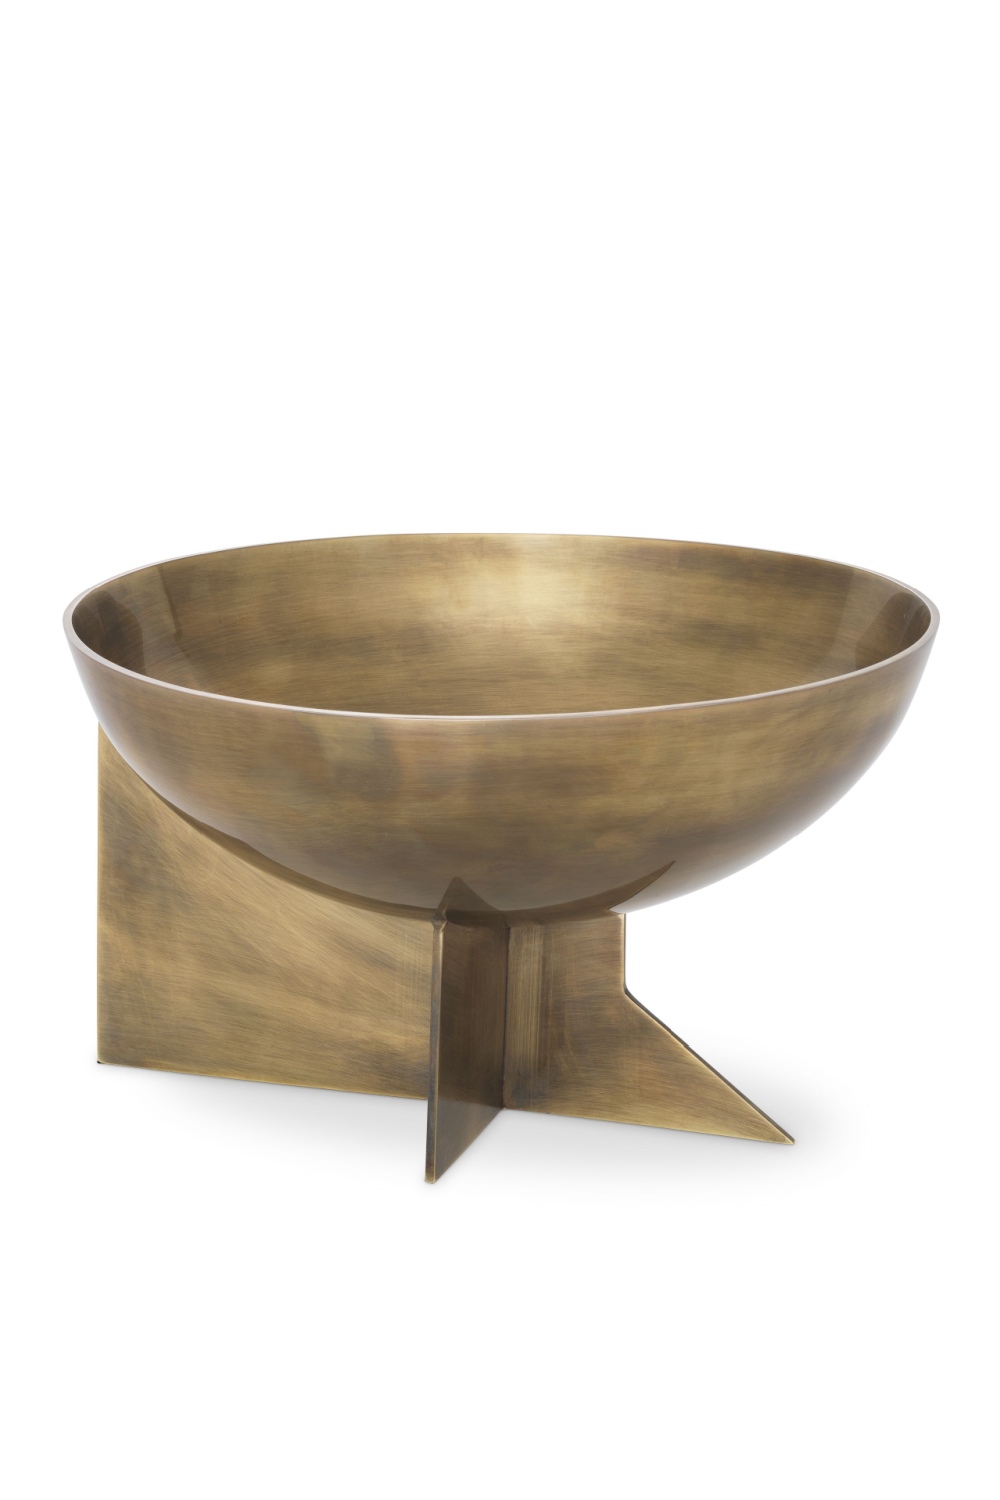 Brass Decorative Bowl | Eichholtz Atalante